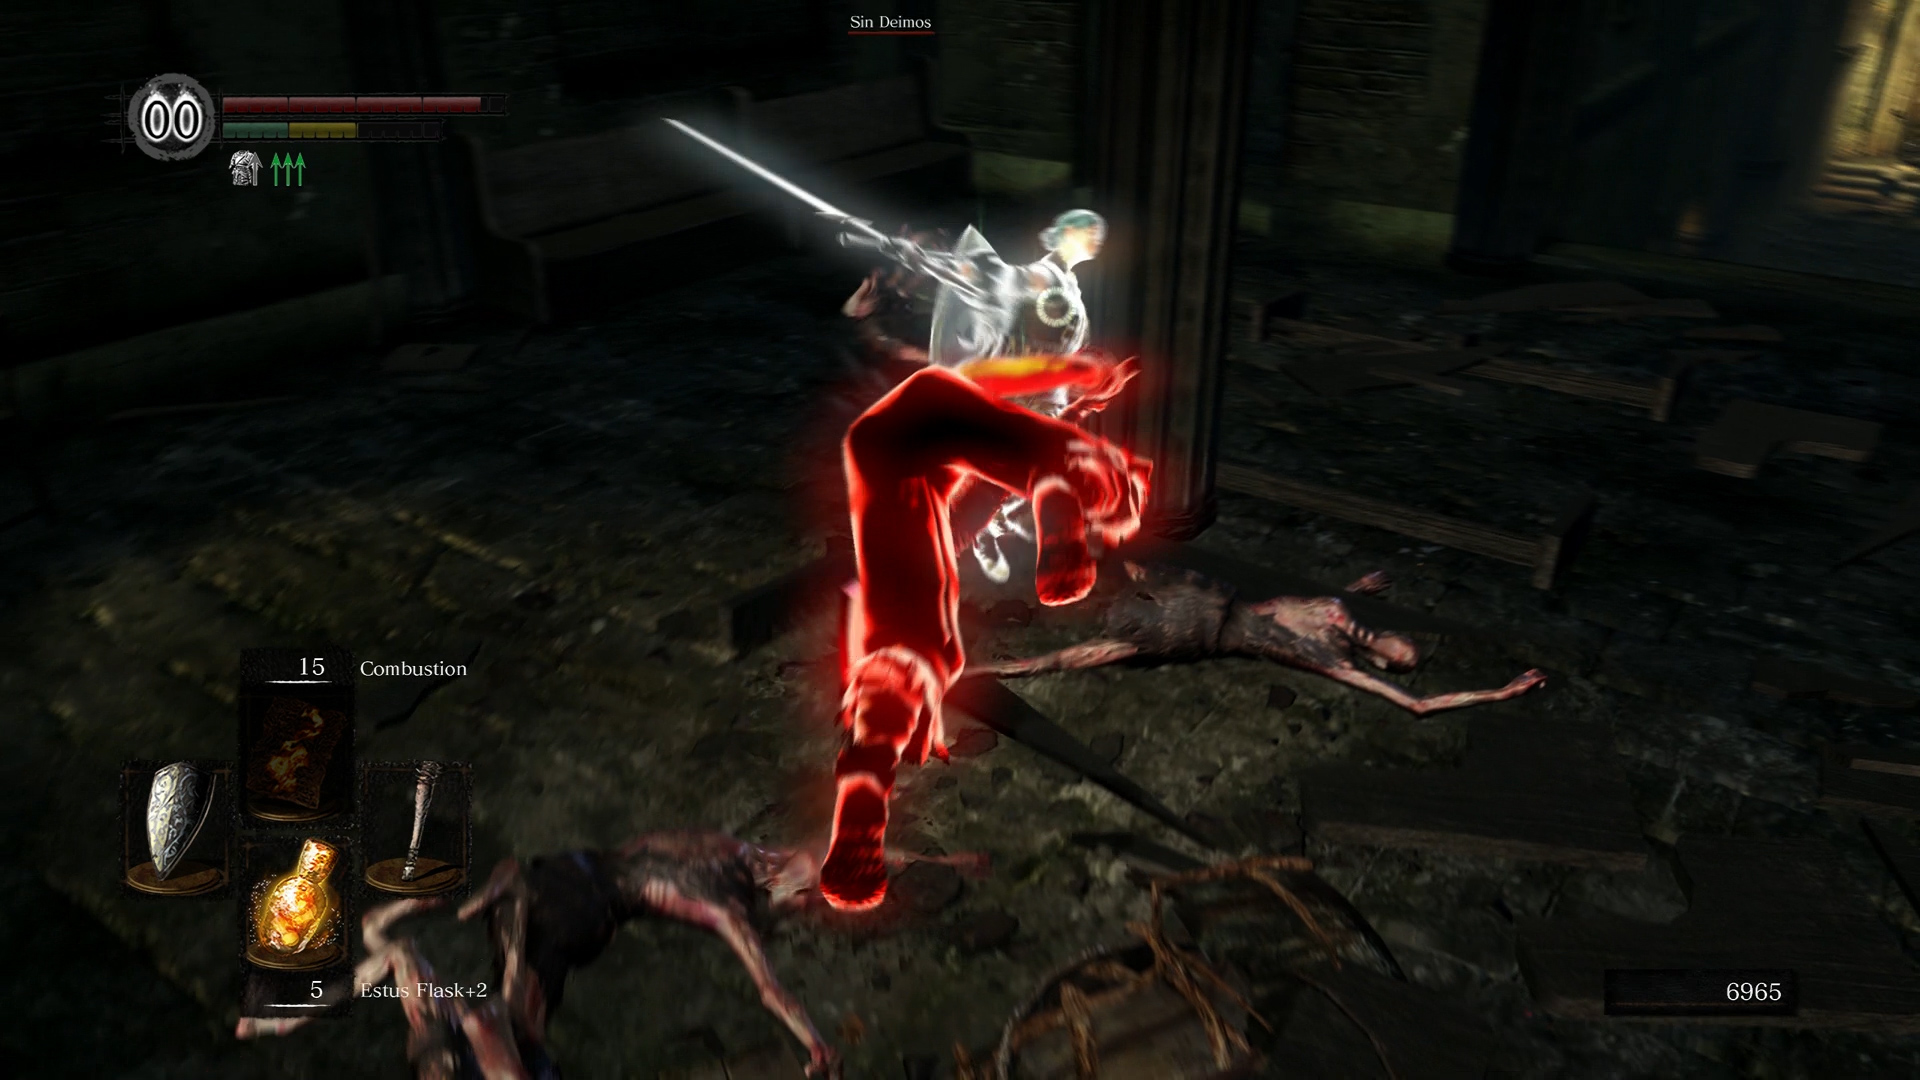 Dark souls remastered review you defeated poor frame